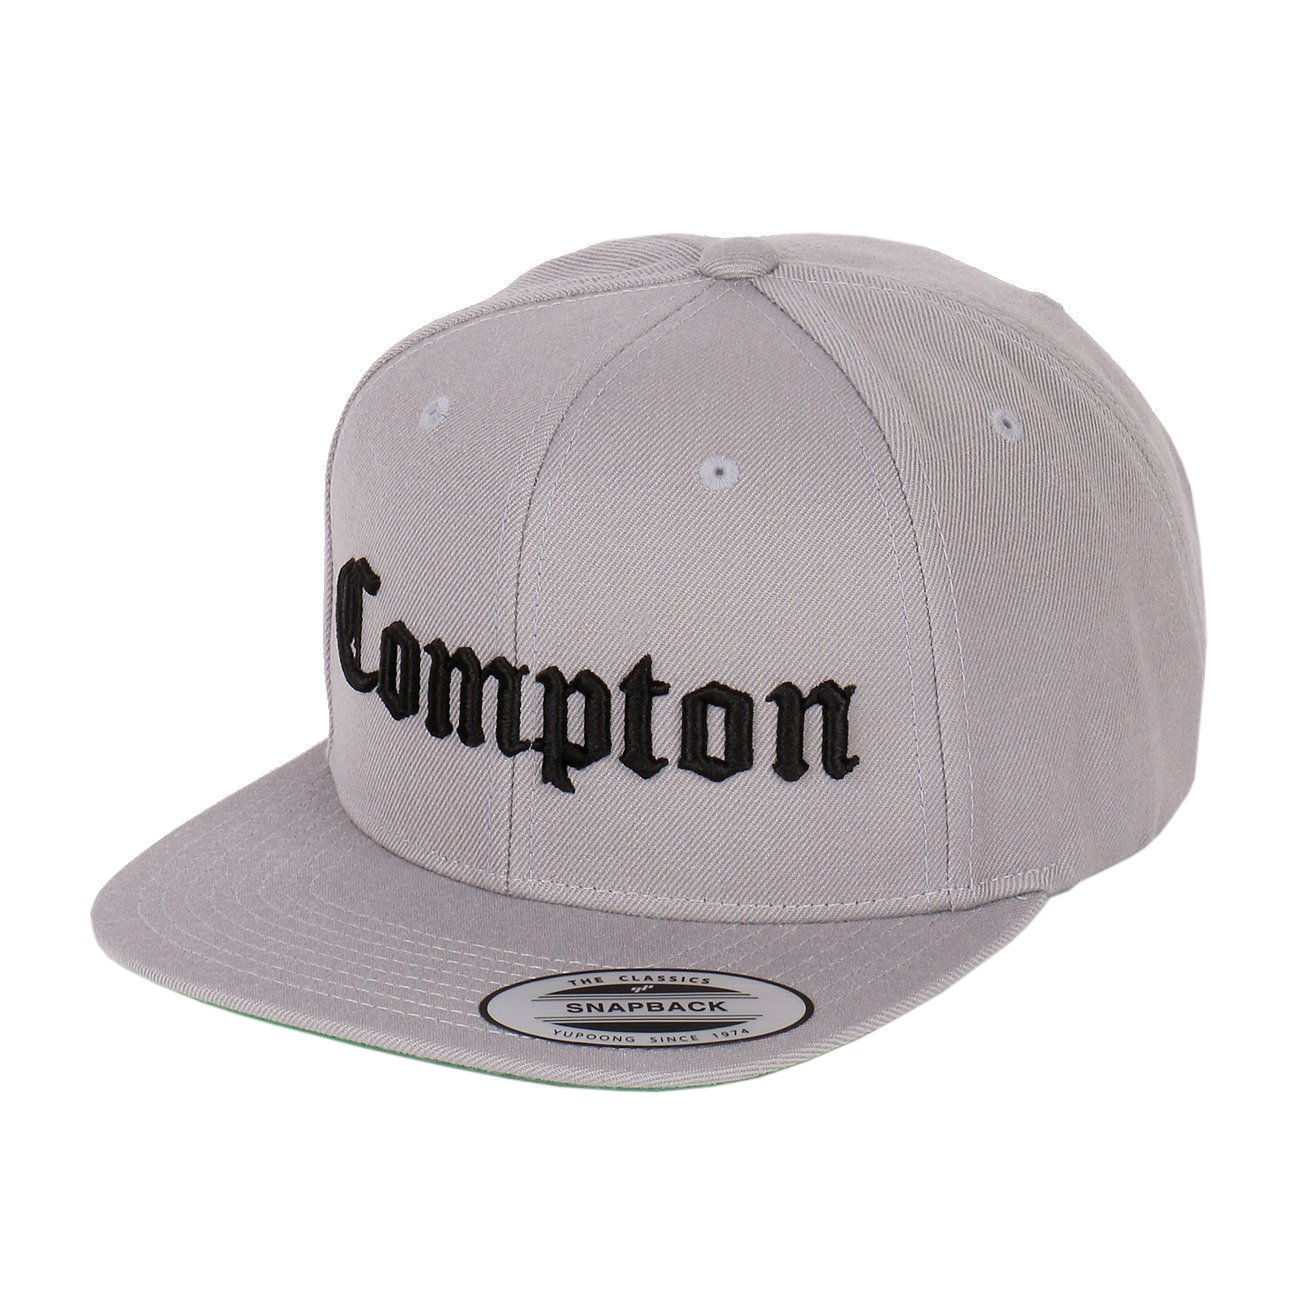 498ac41966b Compton Embroidery Flat Bill Adjustable Yupoong Cap by Flexfit (More  Colors) (Black) at Amazon Men s Clothing store